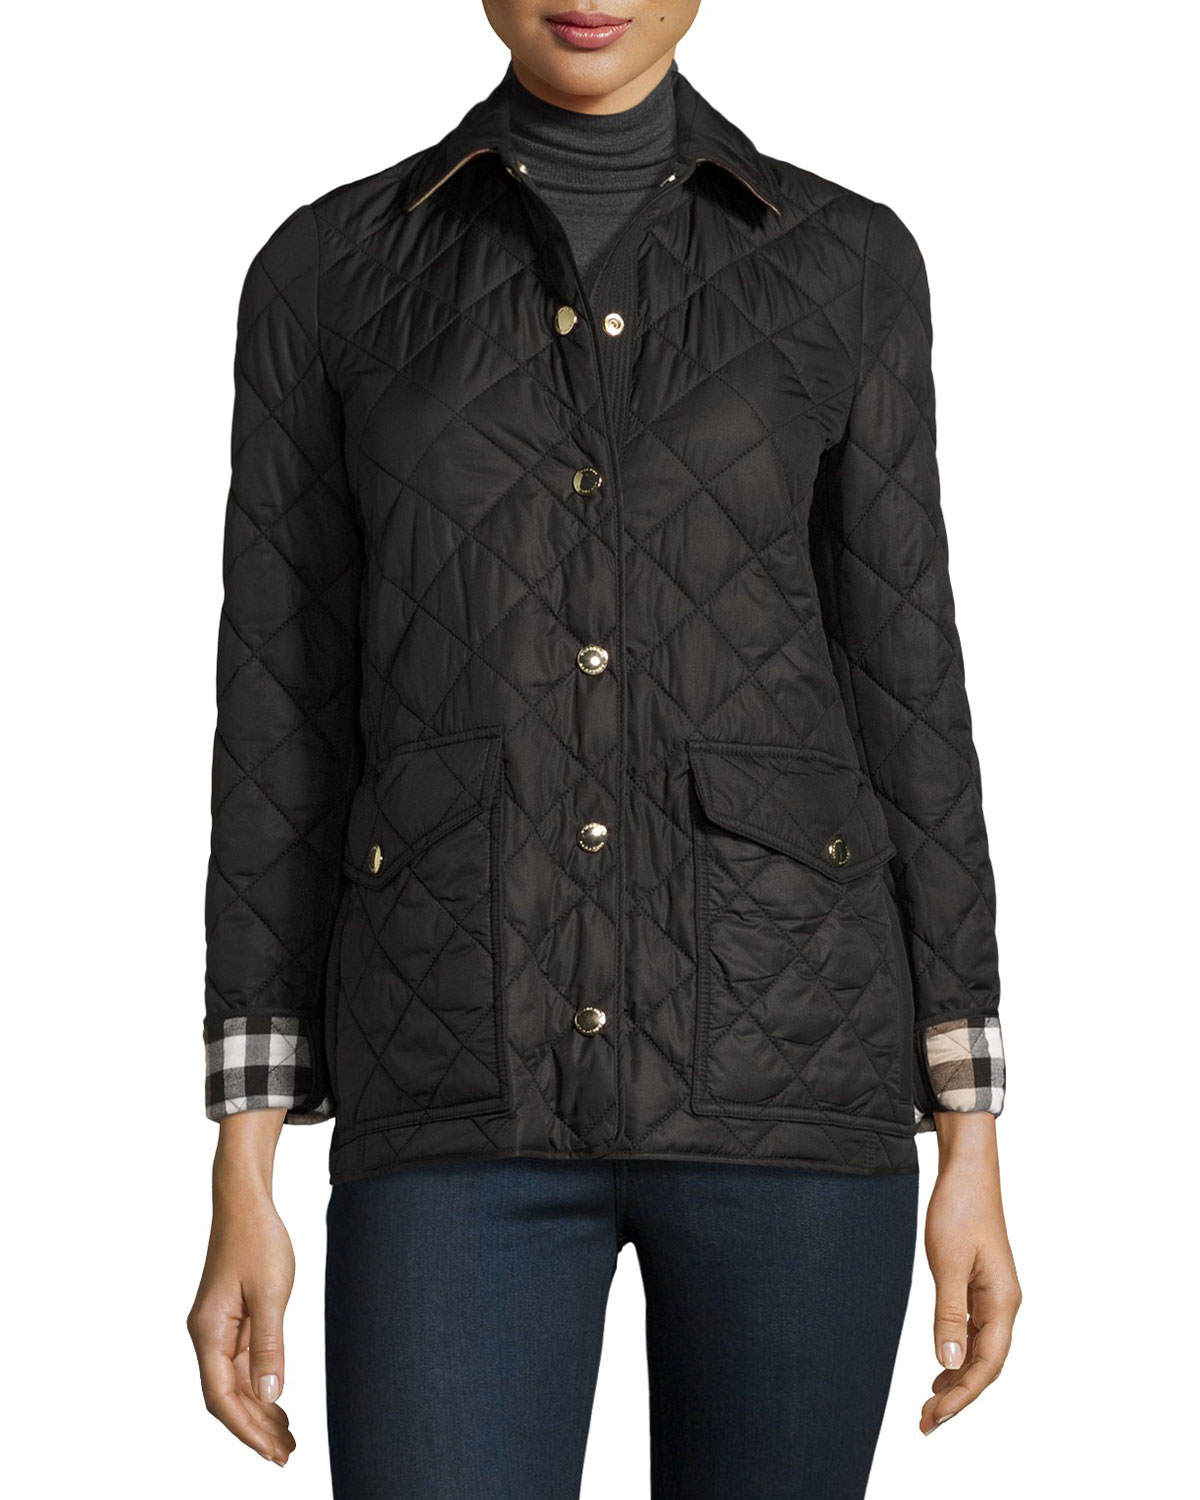 bomber jacket bikers panel burberry men quilted jackets quilt mens leather pin s